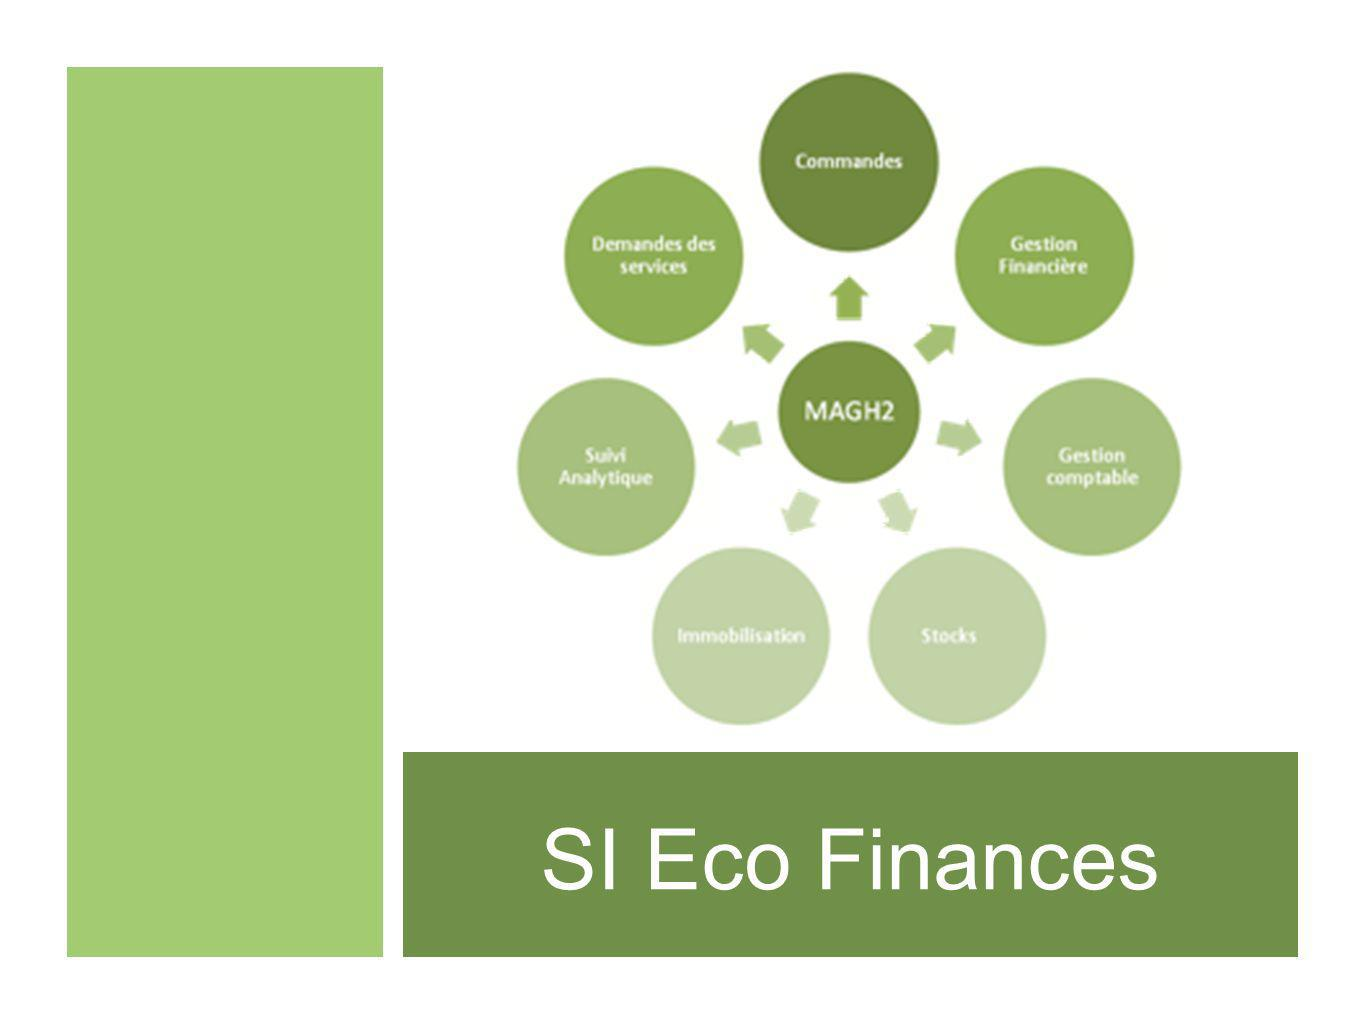 SI Eco Finances